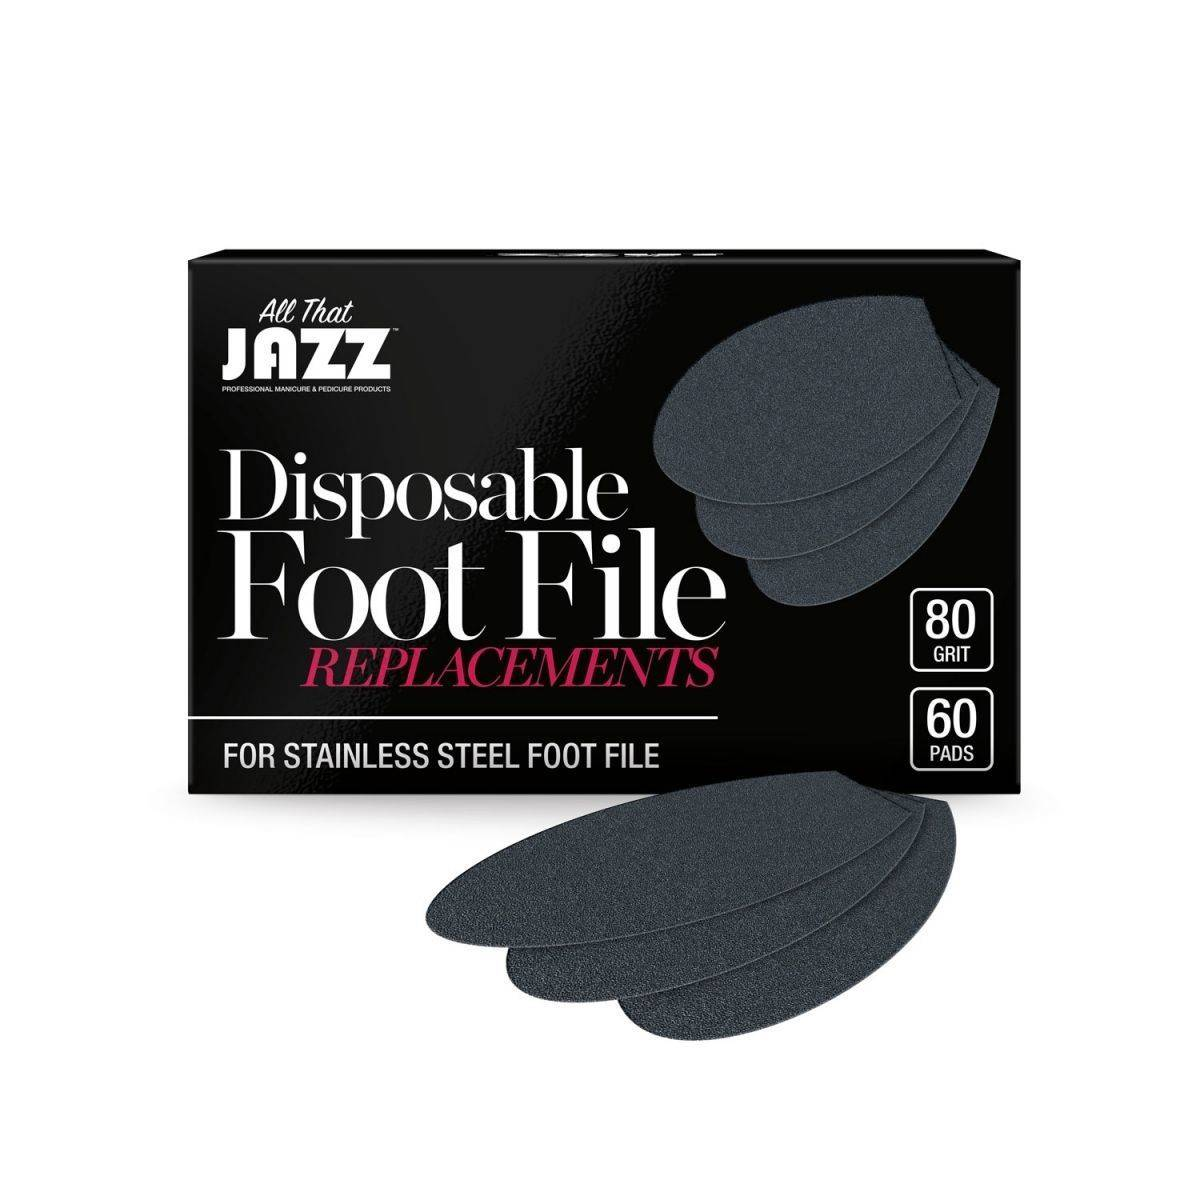 All That Jazz: Stainless Steel Foot File replacements 60/80